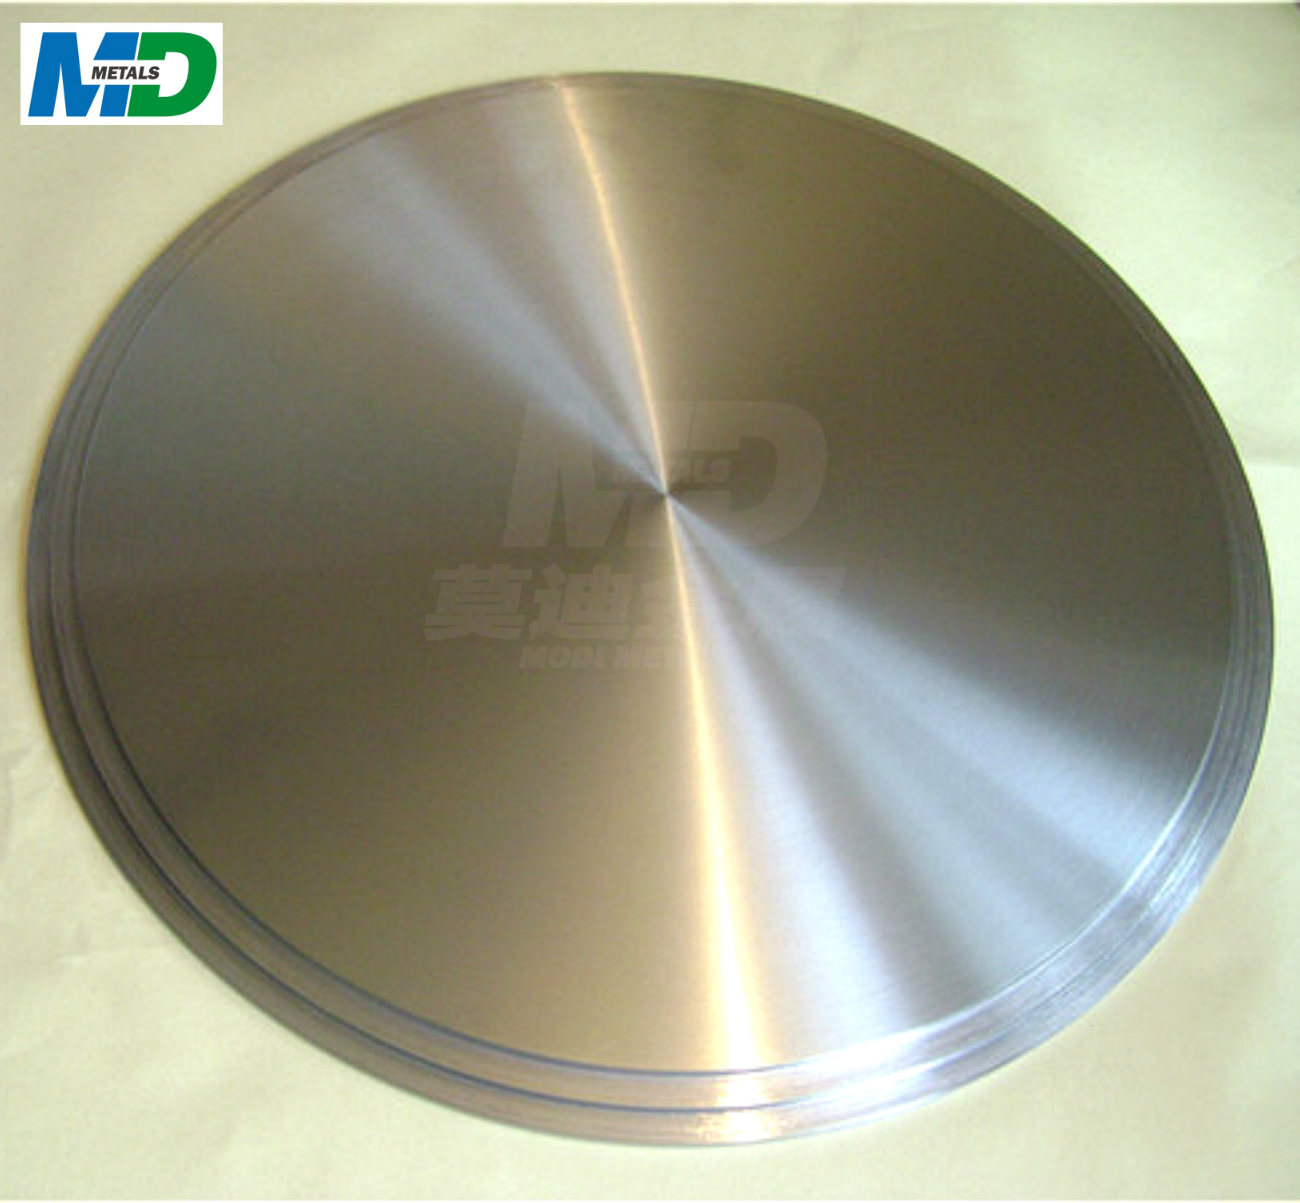 Tzm Molybdenum Alloy Plate Sputtering Targets Price